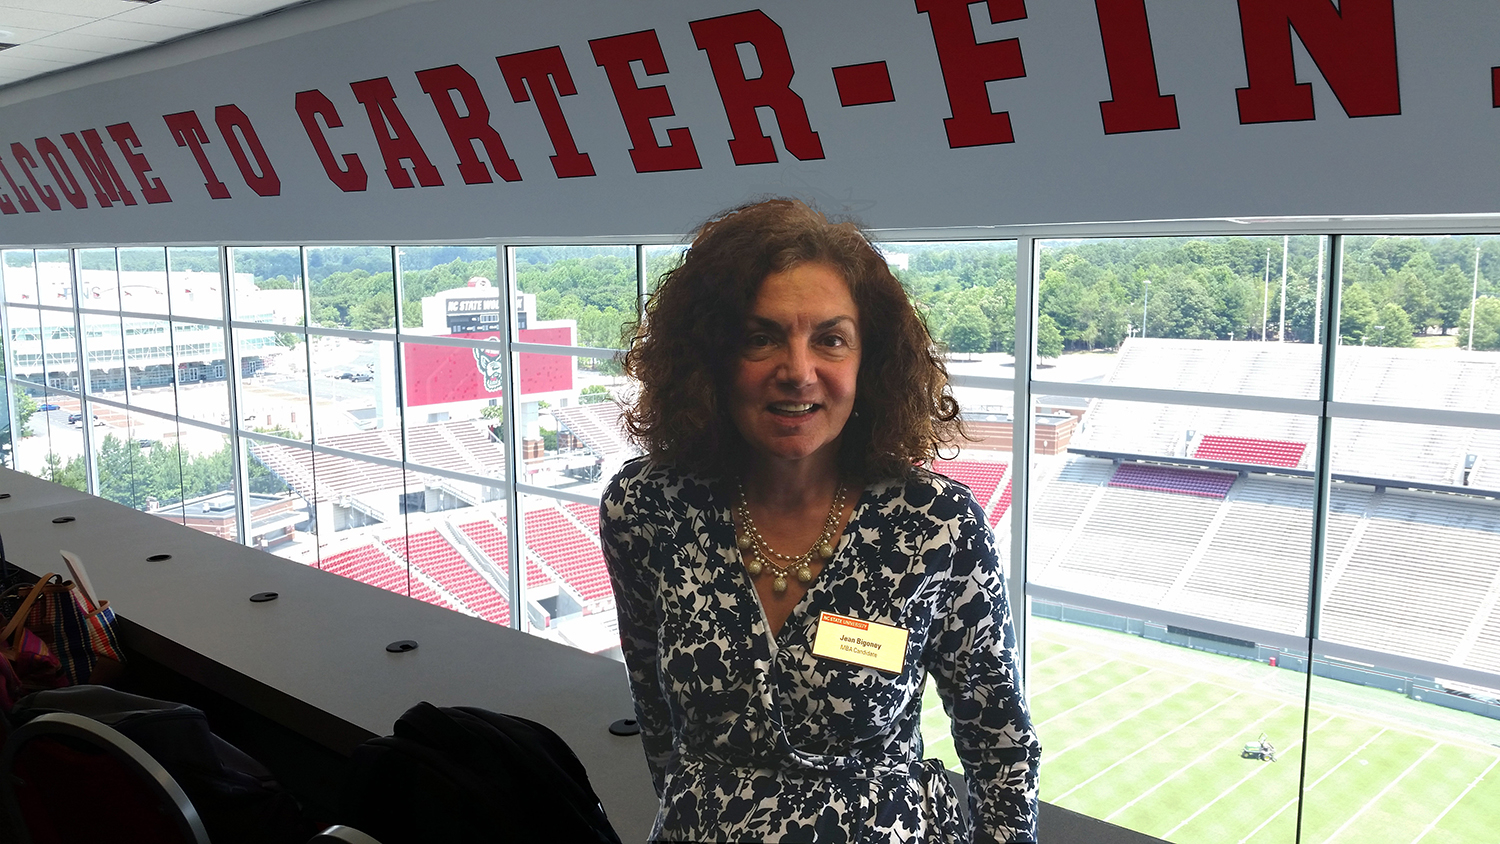 Jean Bigoney at one of the Jenkins Professional Online MBA Program Raleigh Residency events. Jean is pictured in the suites at Carter Finley Stadium overlooking the field.